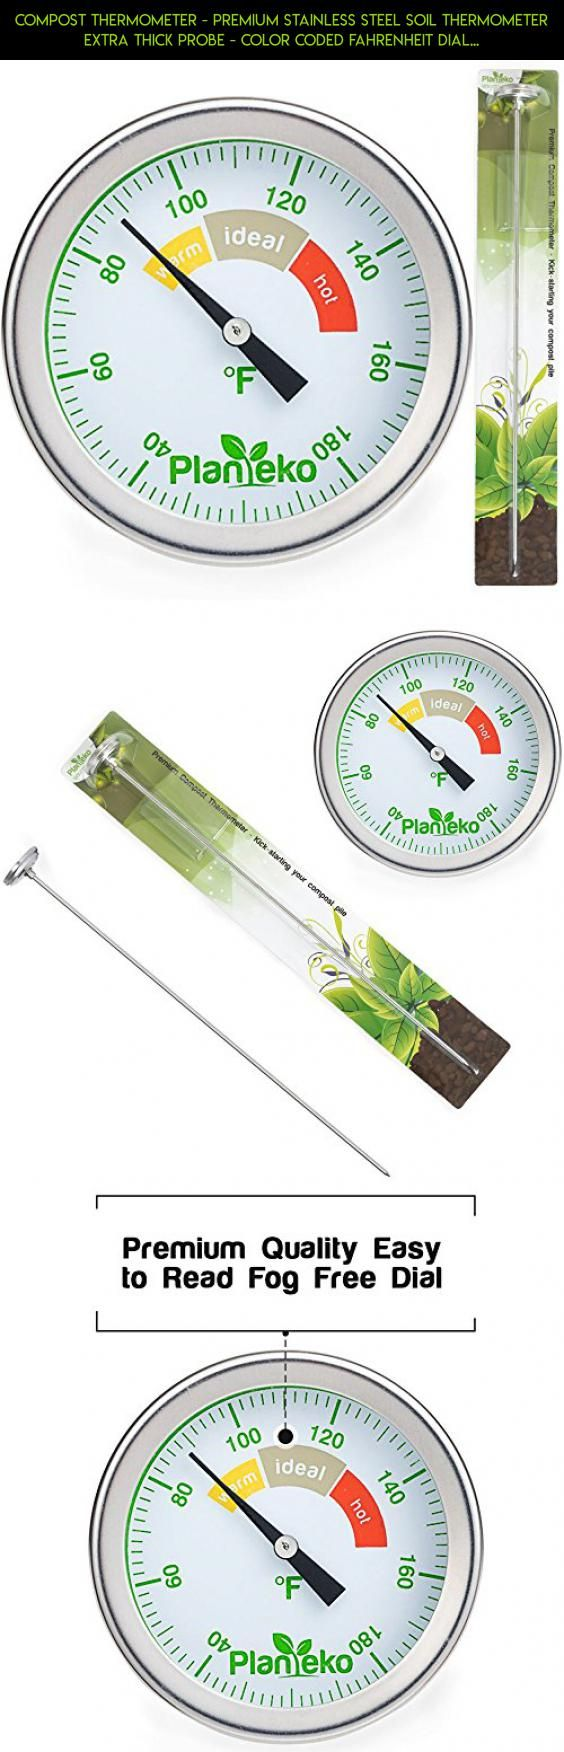 Compost Thermometer - Premium Stainless Steel Soil Thermometer Extra Thick Probe - Color Coded Fahrenheit Dial - Extra Long 20 Inch Stem - Ideal for Backyard Composting #drone #kit #plans #shopping #fpv #technology #racing #camera #products #gadgets #jade #tech #heating #parts